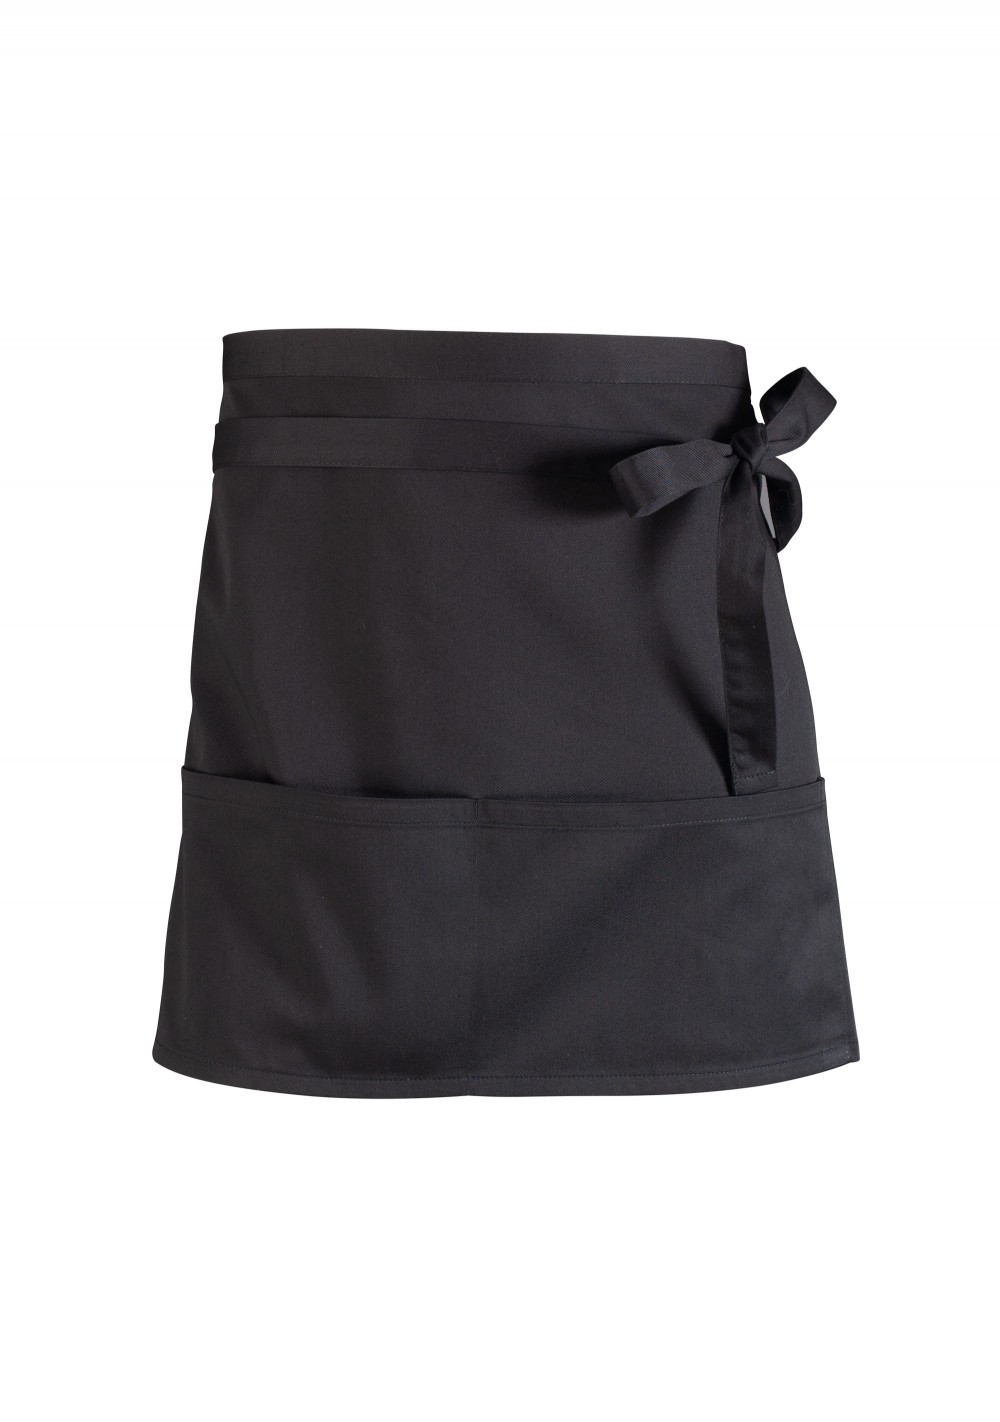 Waist Cooking Apron in Jet Black